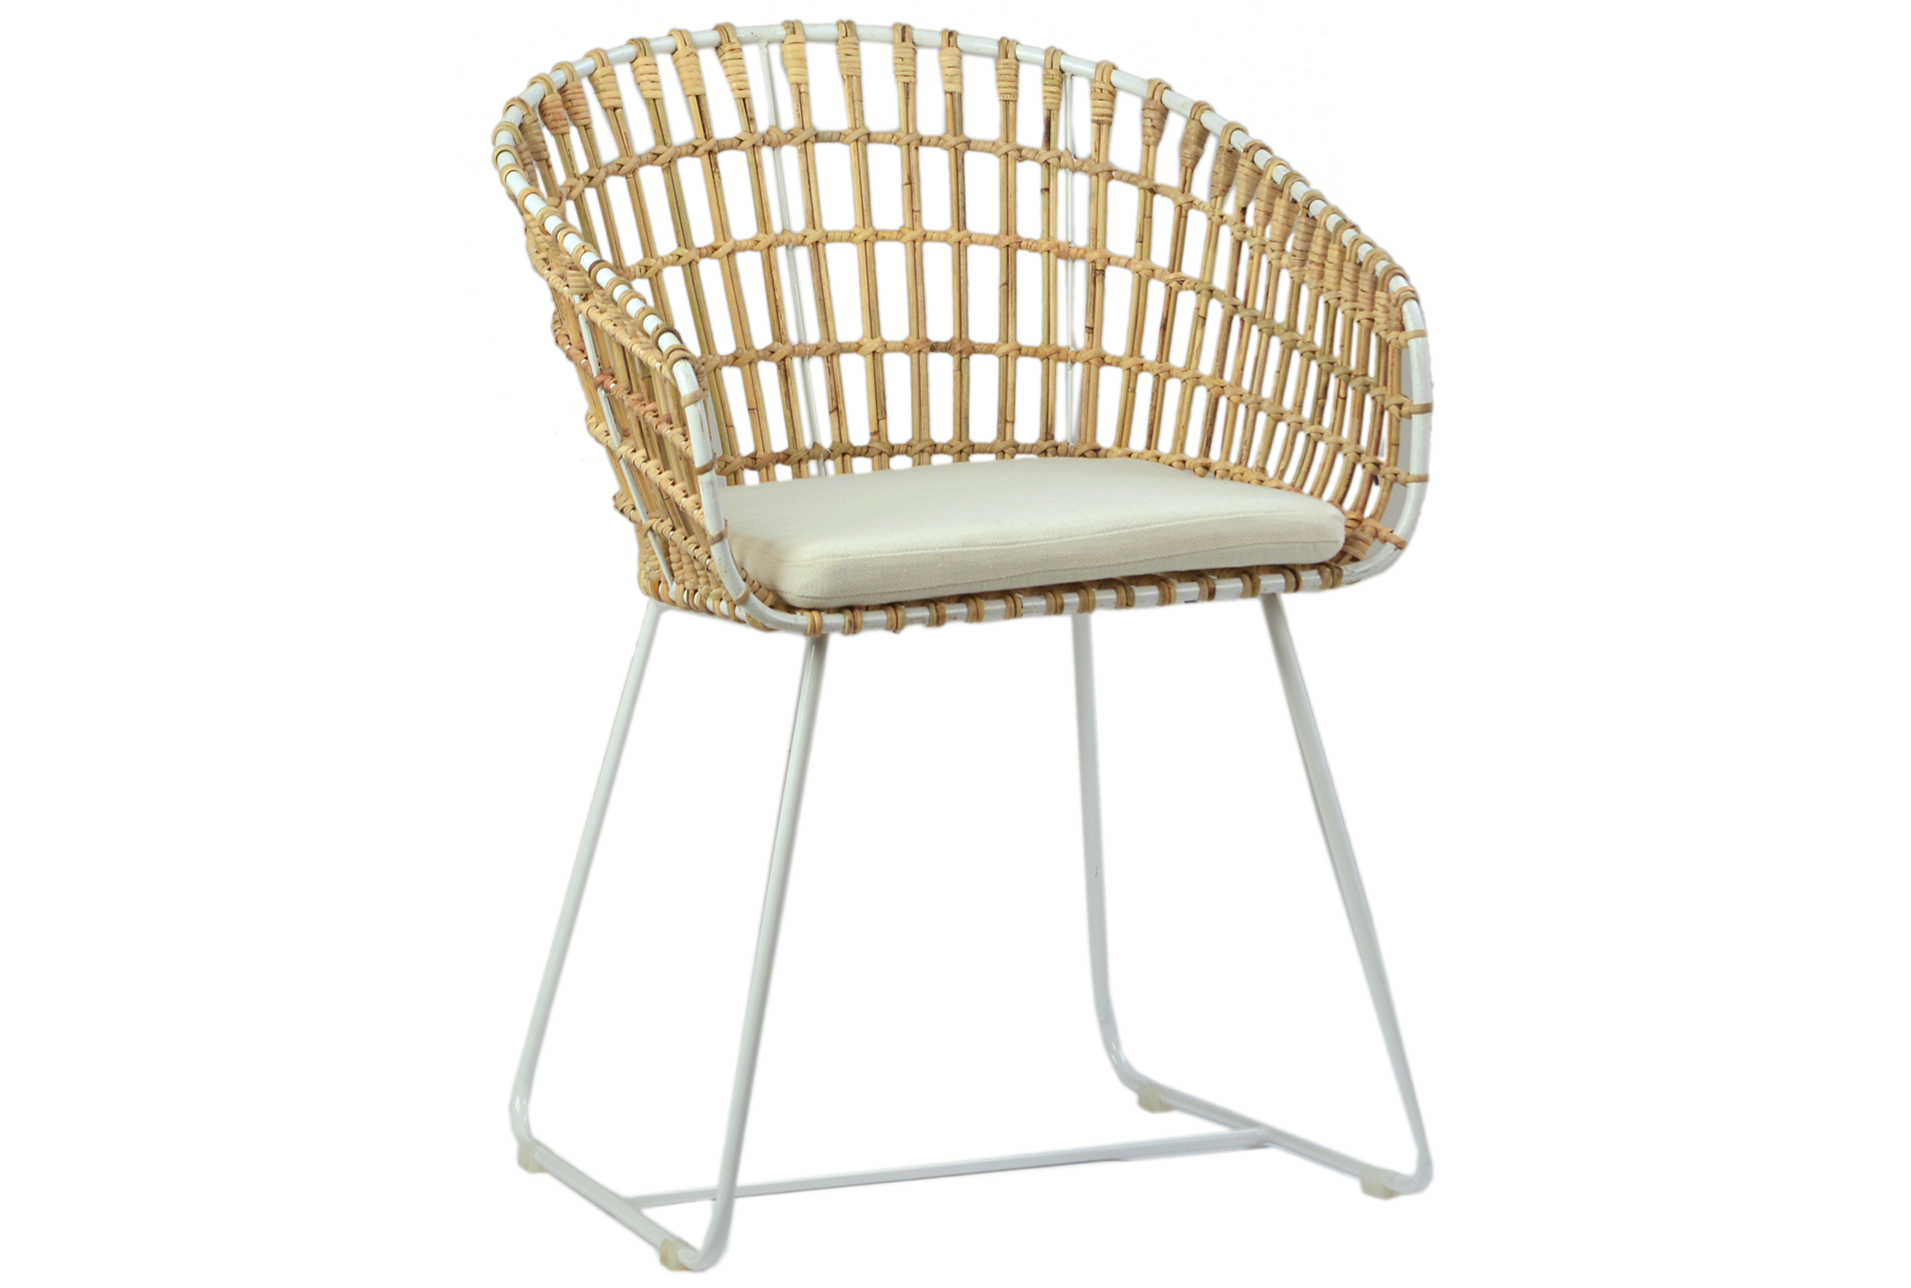 Rattan Accent Chair Iron Rattan Accent Chair With White Legs